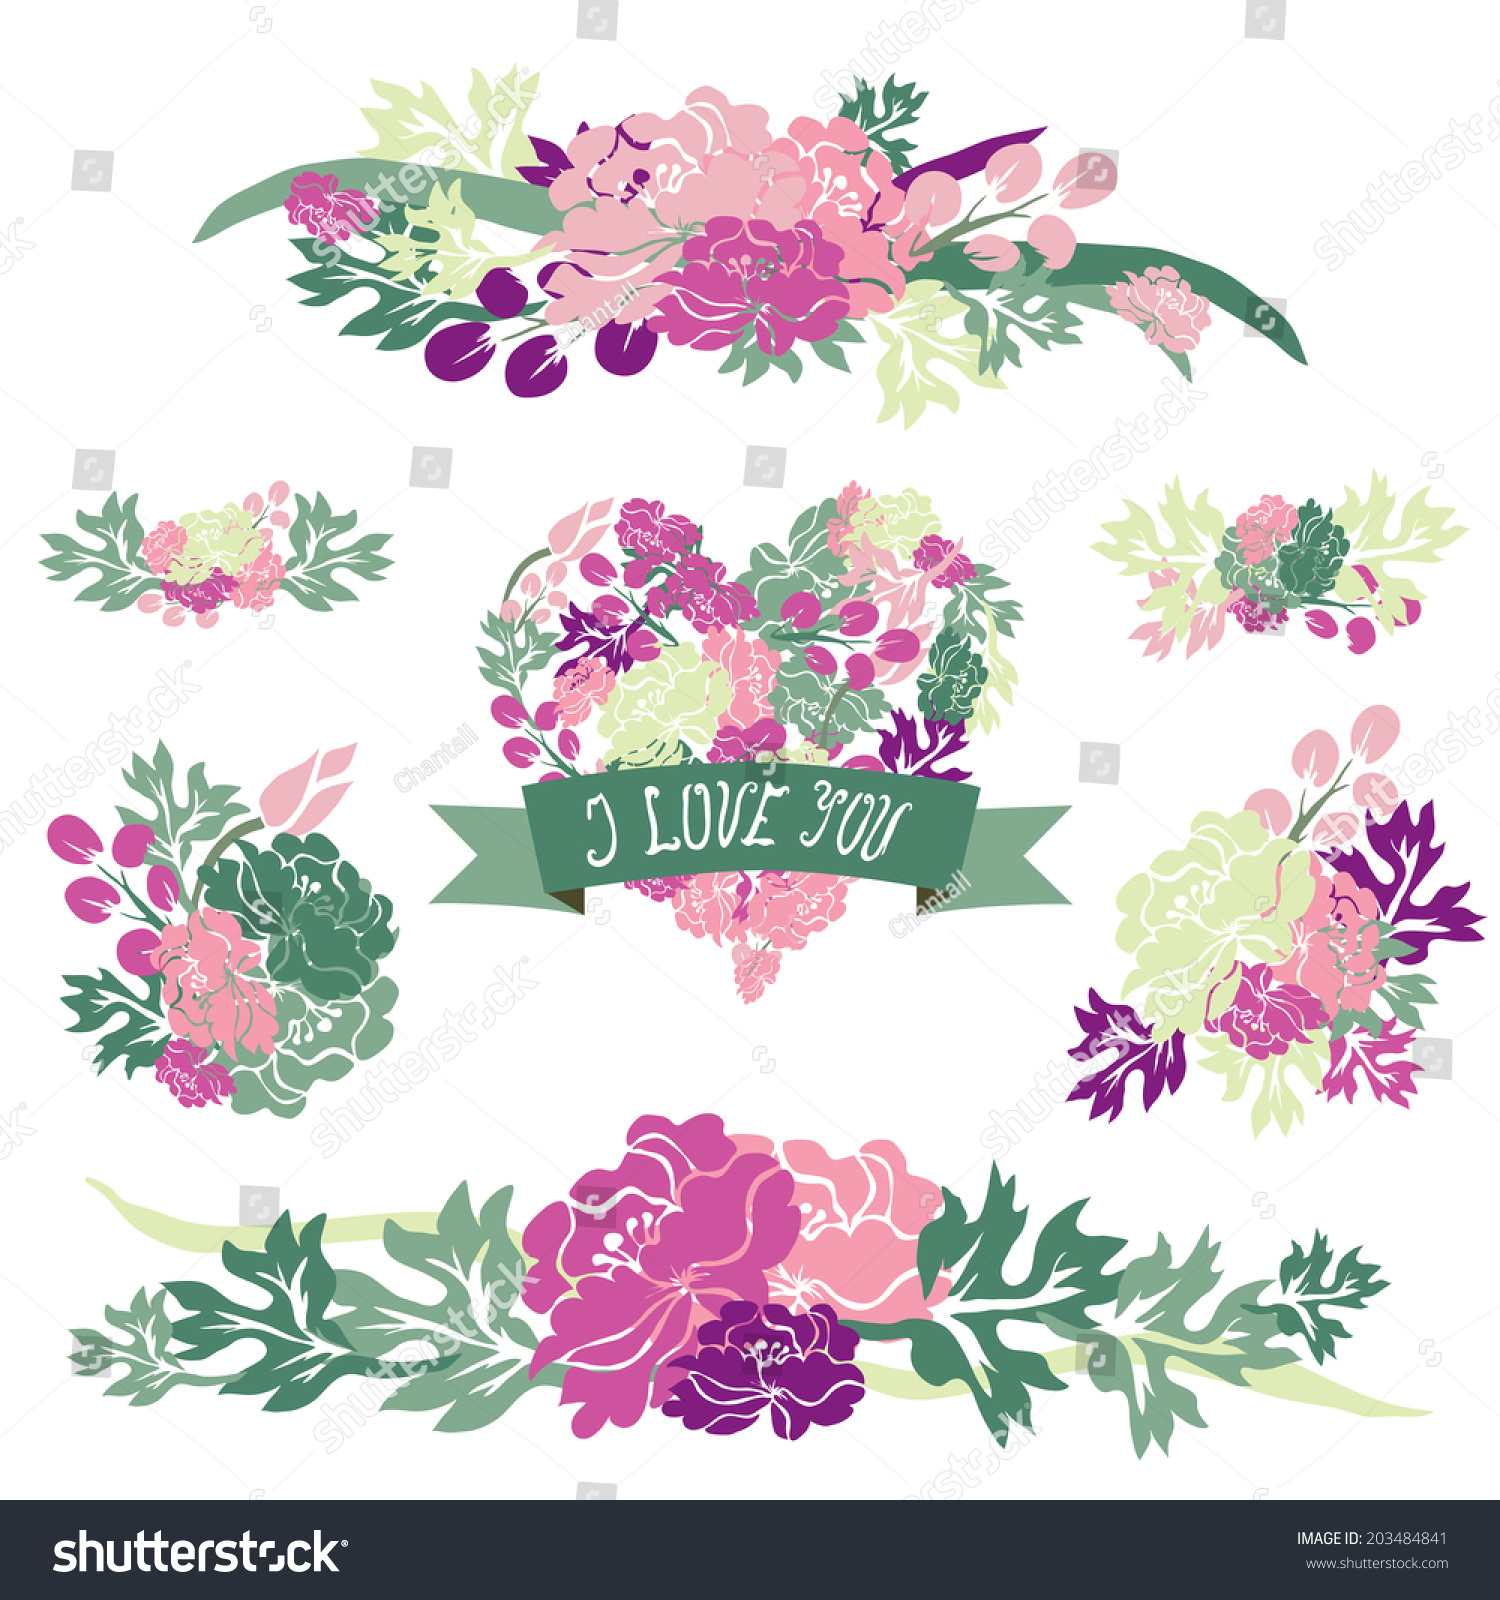 Elegant floral bouquets peony flowers design stock illustration elegant floral bouquets with peony flowers design elements floral compositions can be used for izmirmasajfo